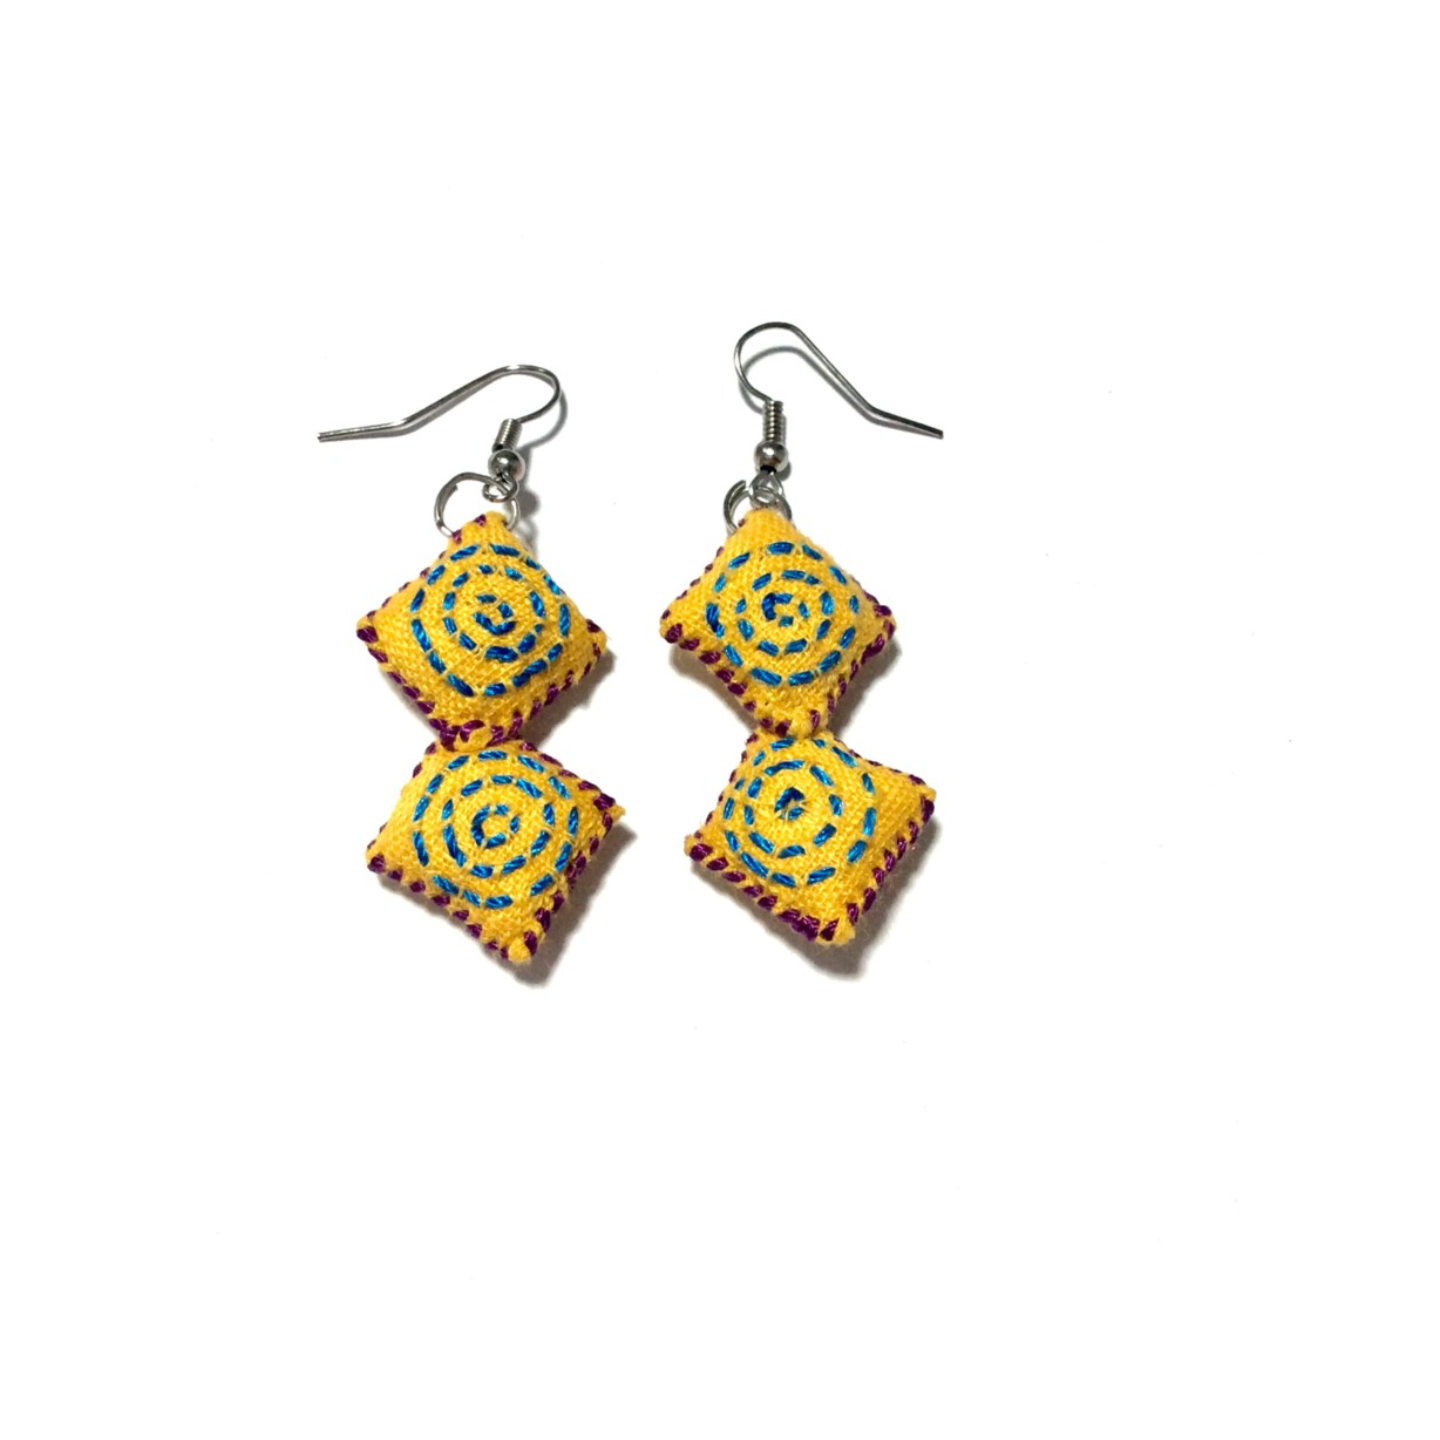 2 Blocks Hand Embroidered Earrings